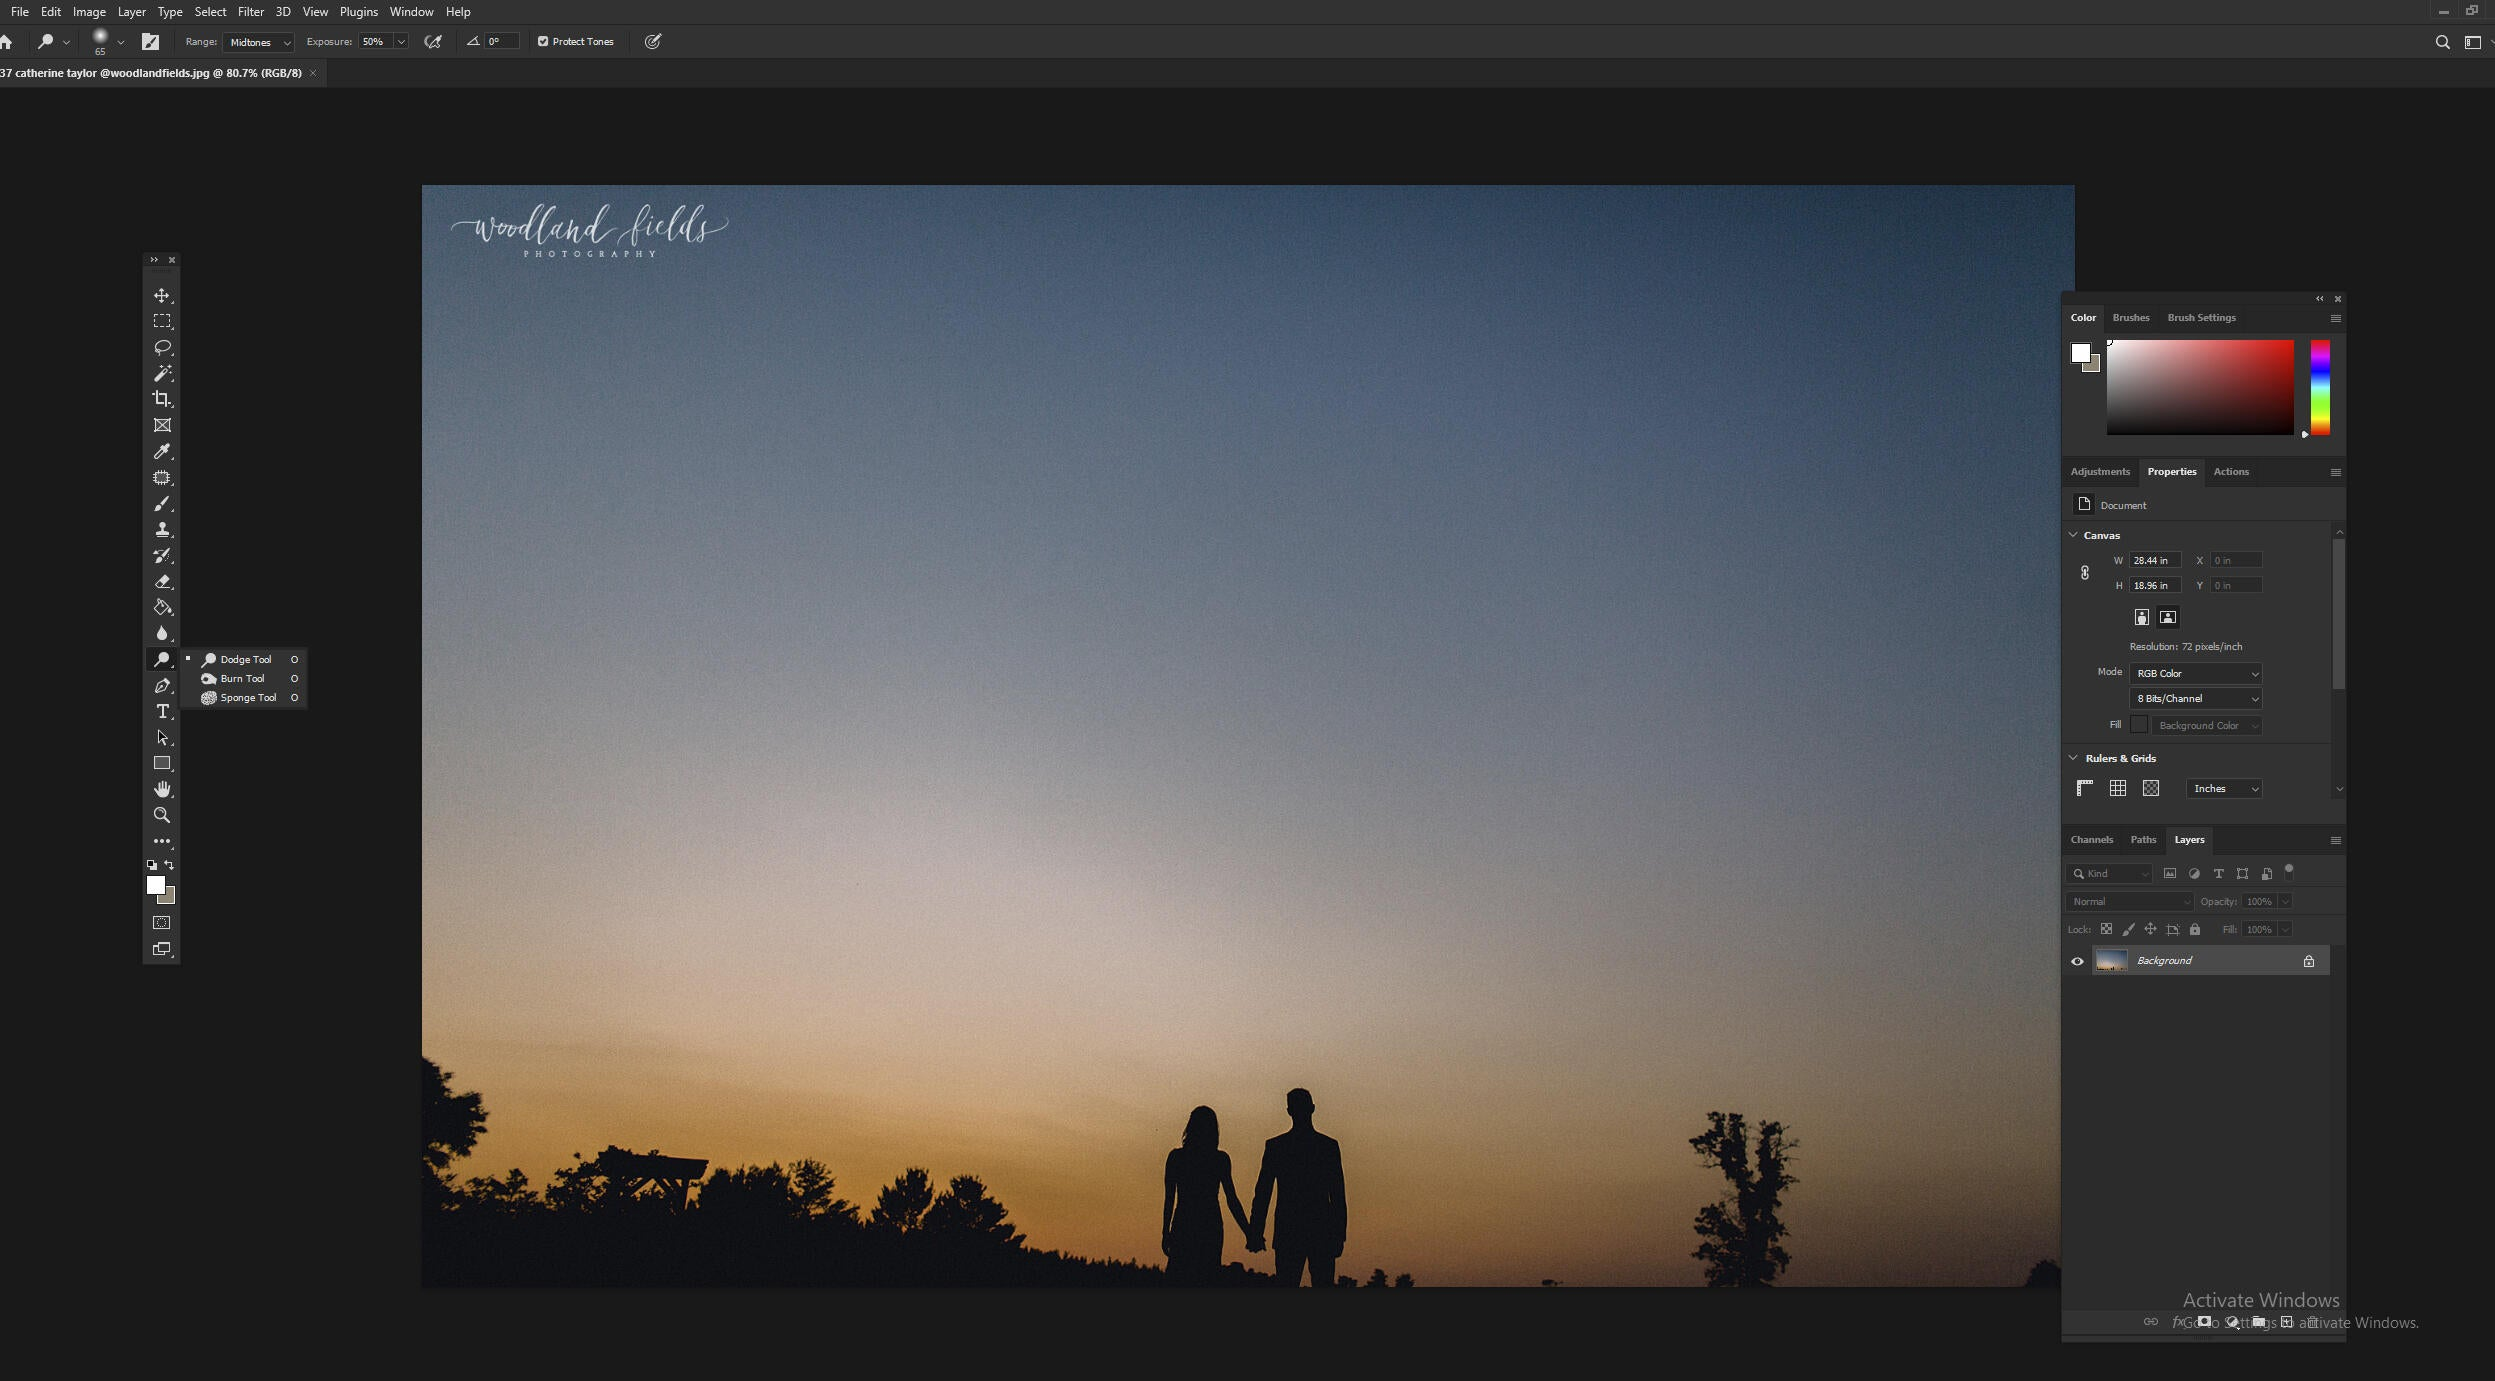 Using dodge and burn tools in Photoshop